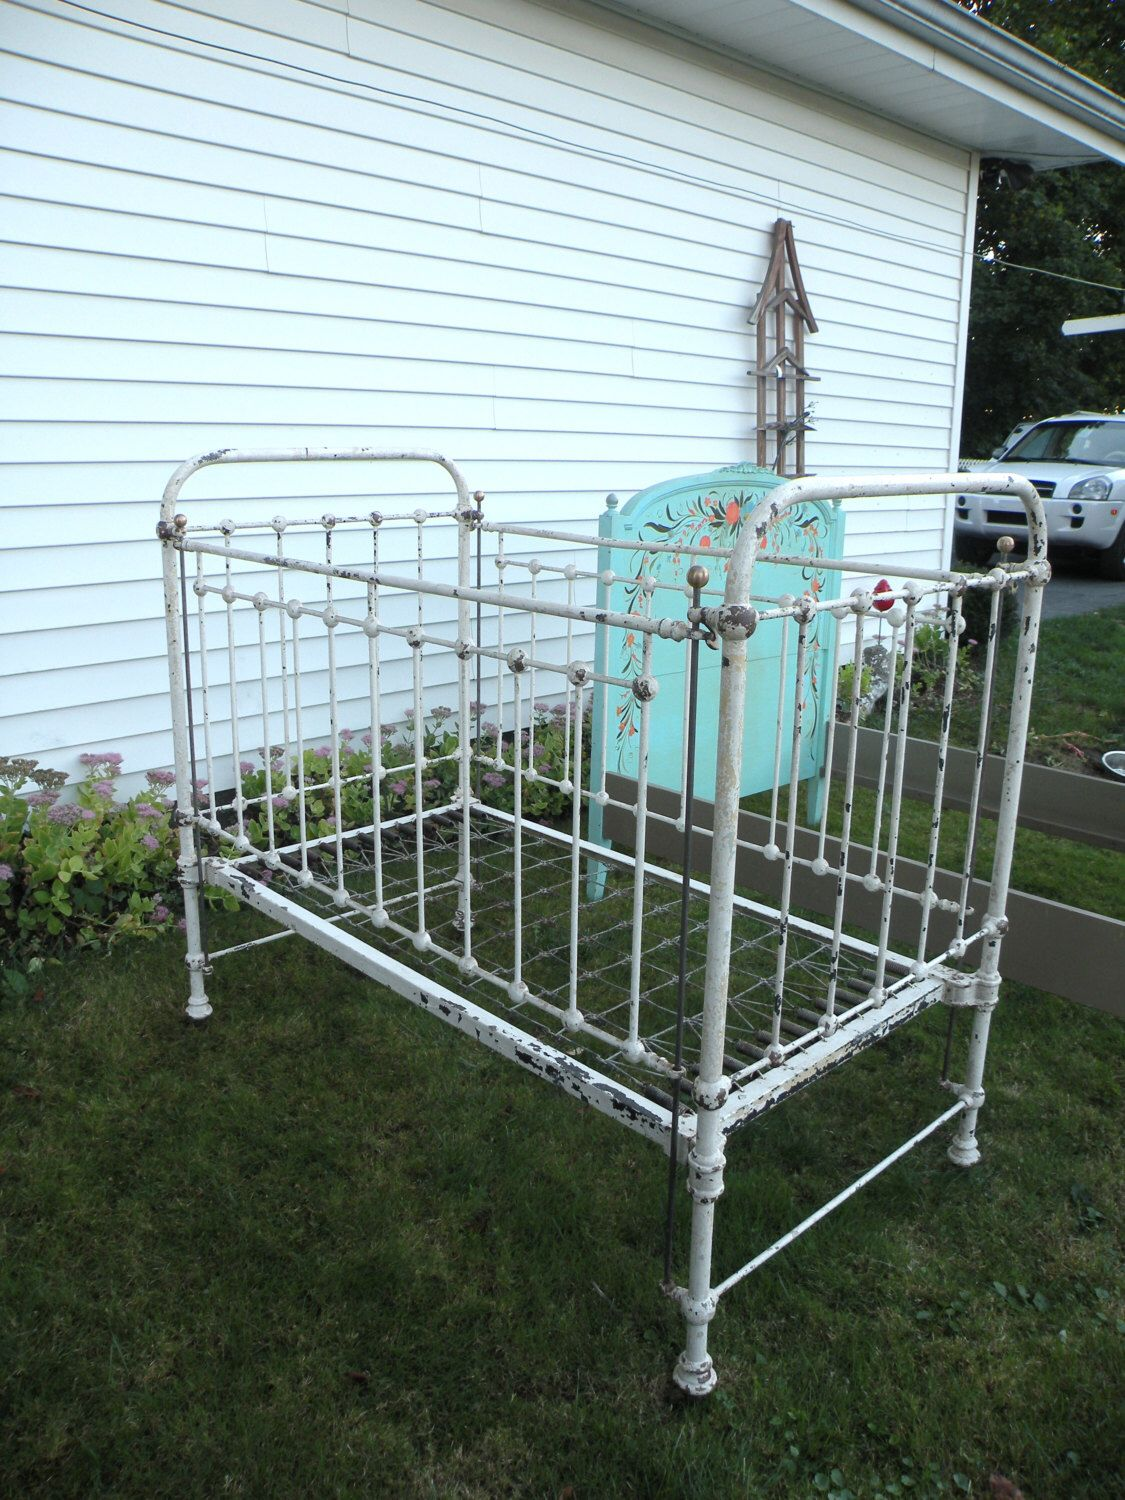 Iron crib for sale craigslist - Antique Wrought Iron Baby Bed Crib Hospital Bed Slide Down Rail Rustic Urban Chic